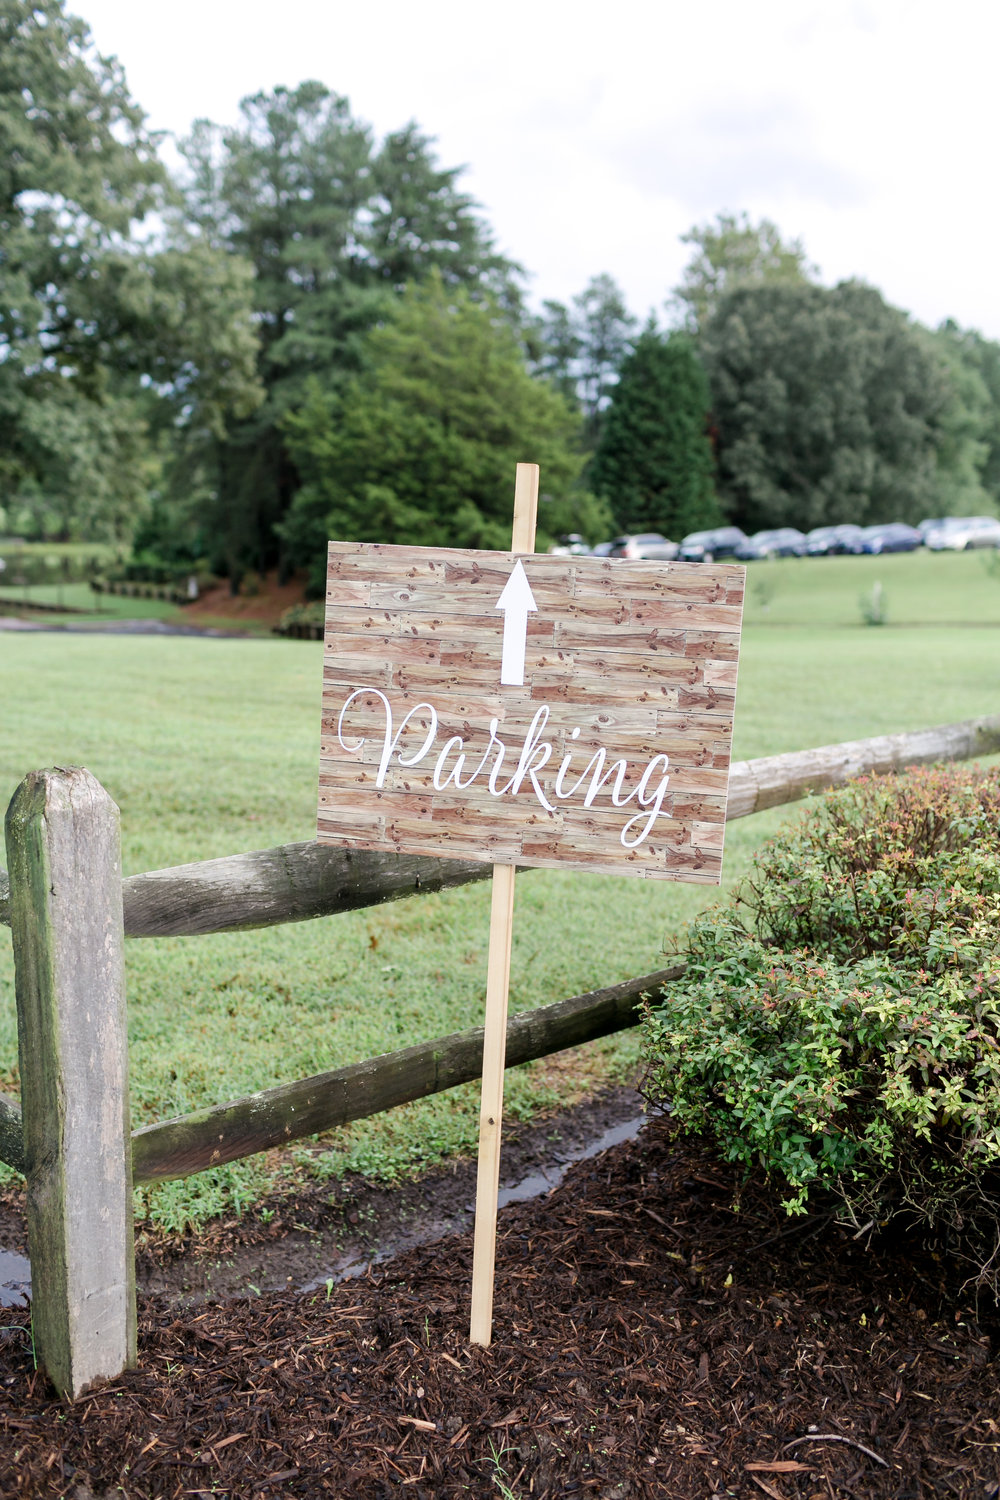 Reception-Parkin-Sign.jpg